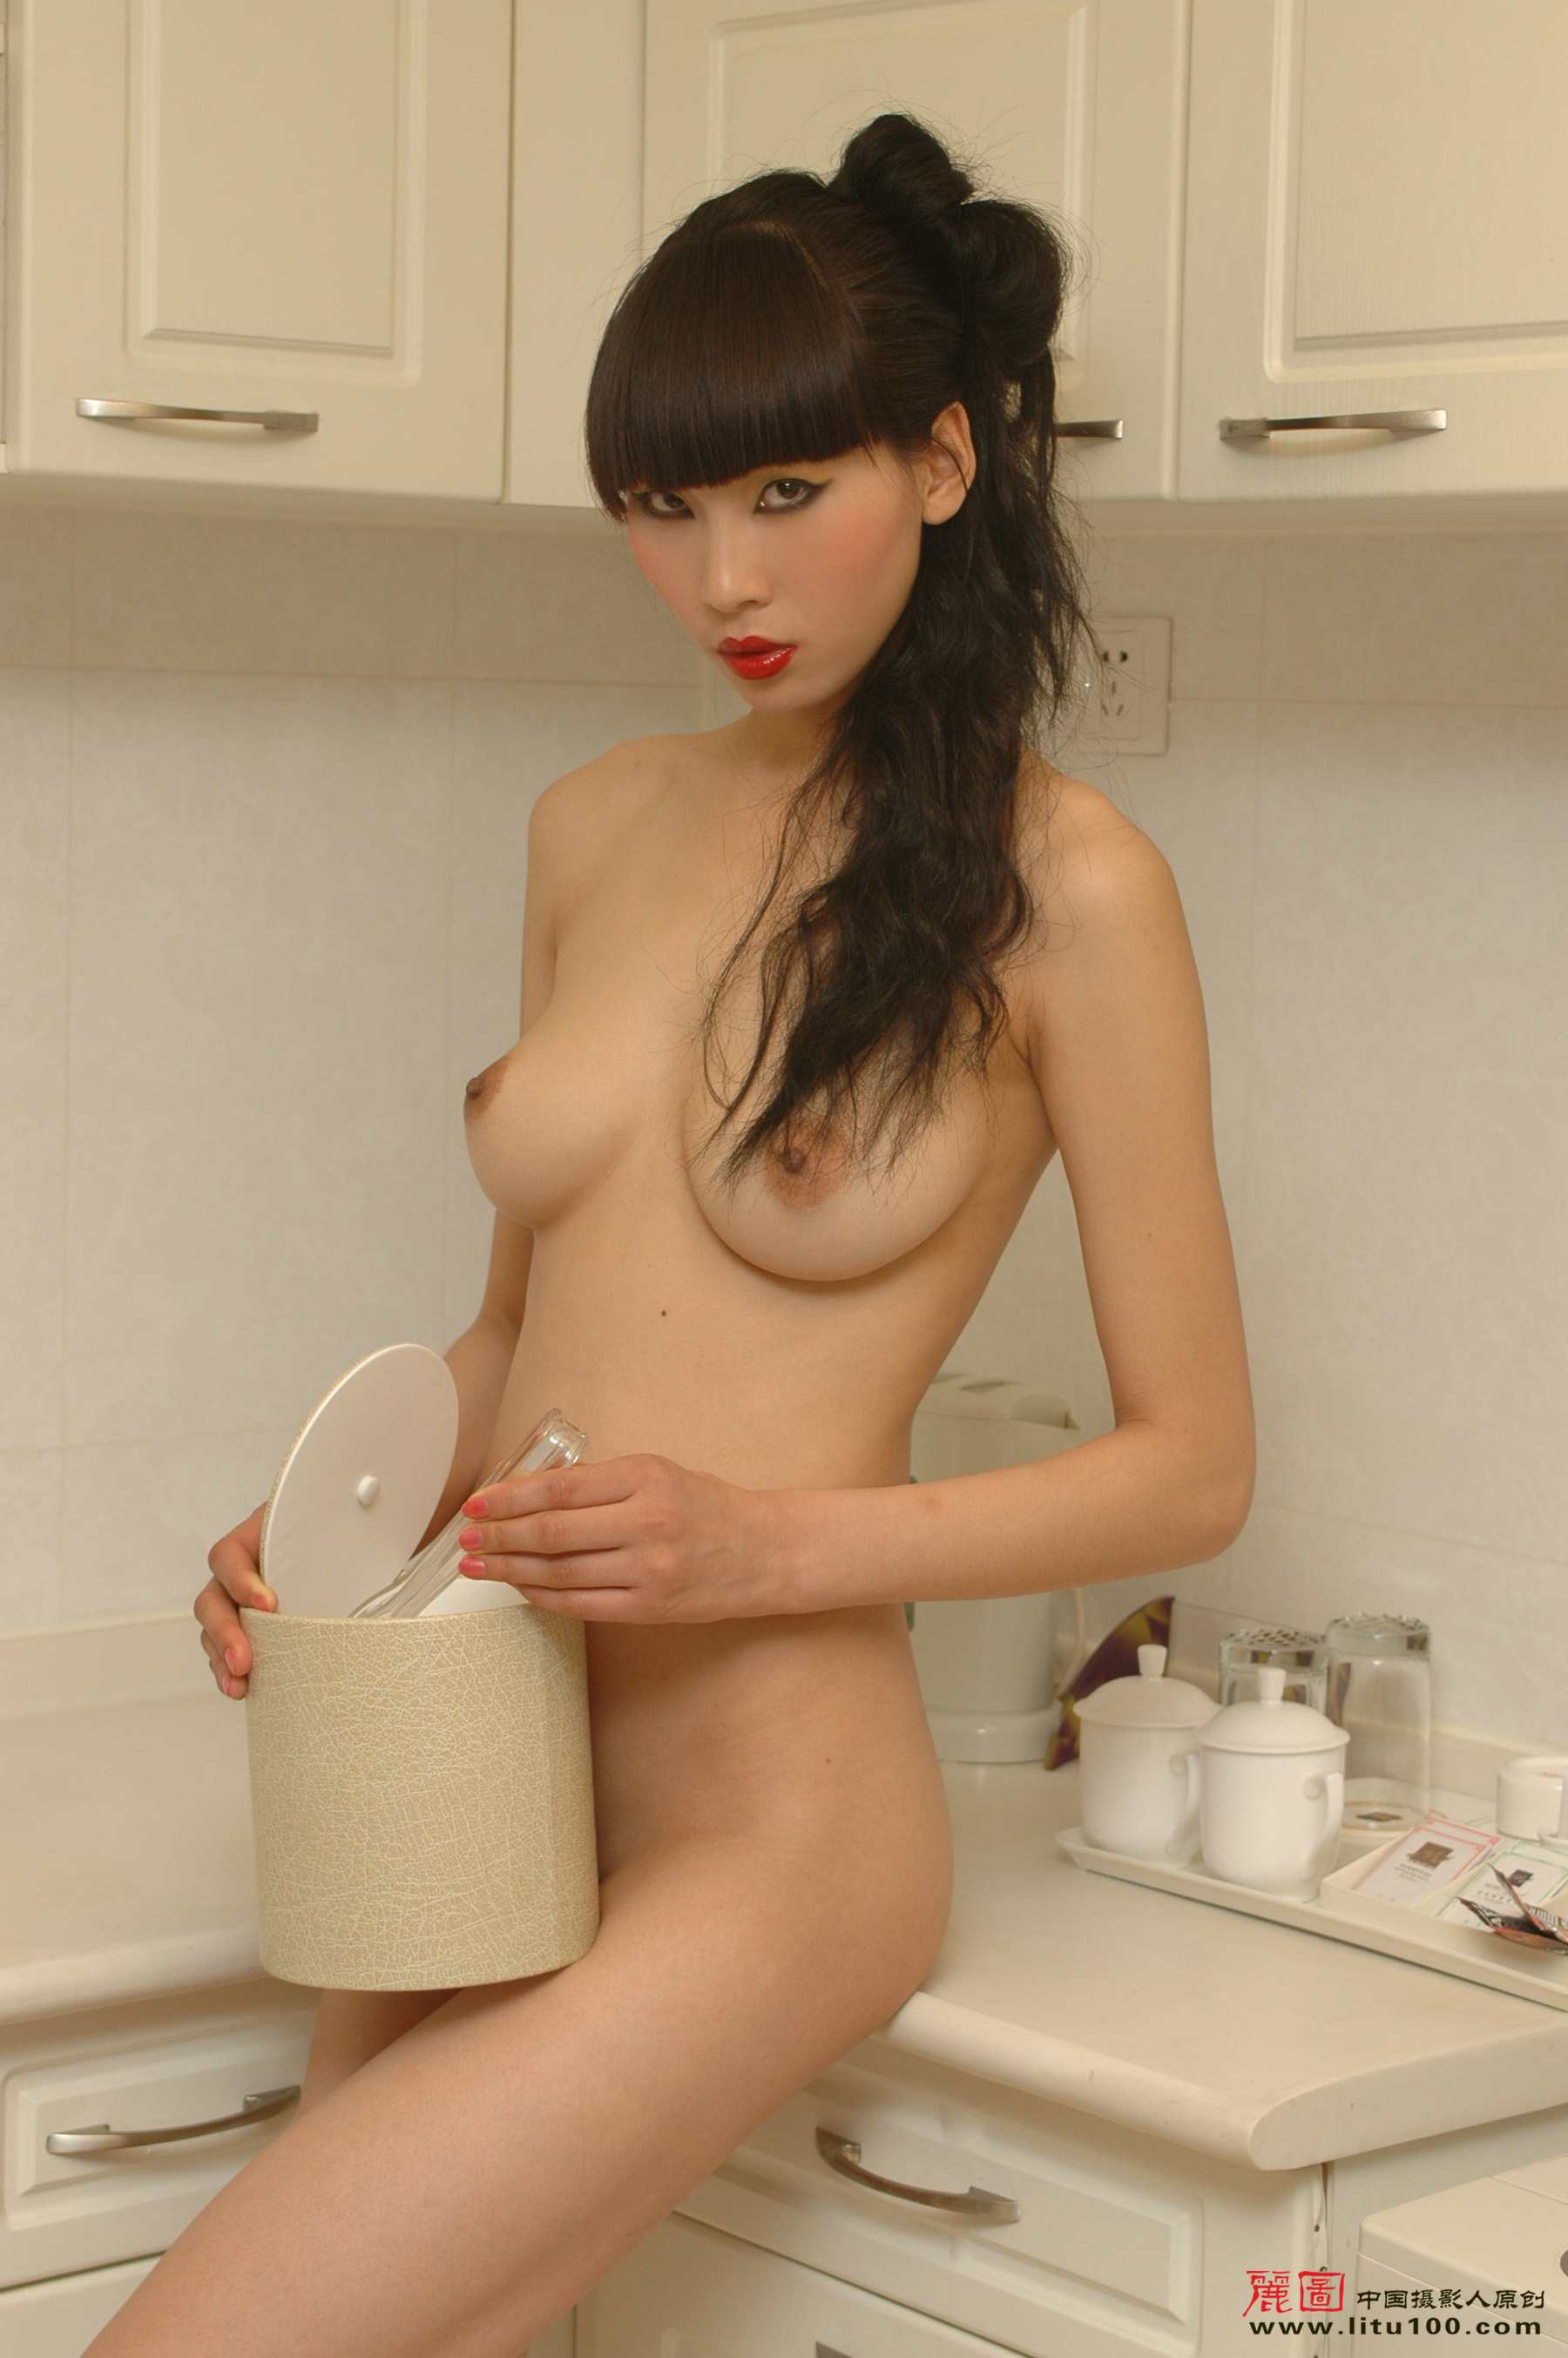 asian nude photography